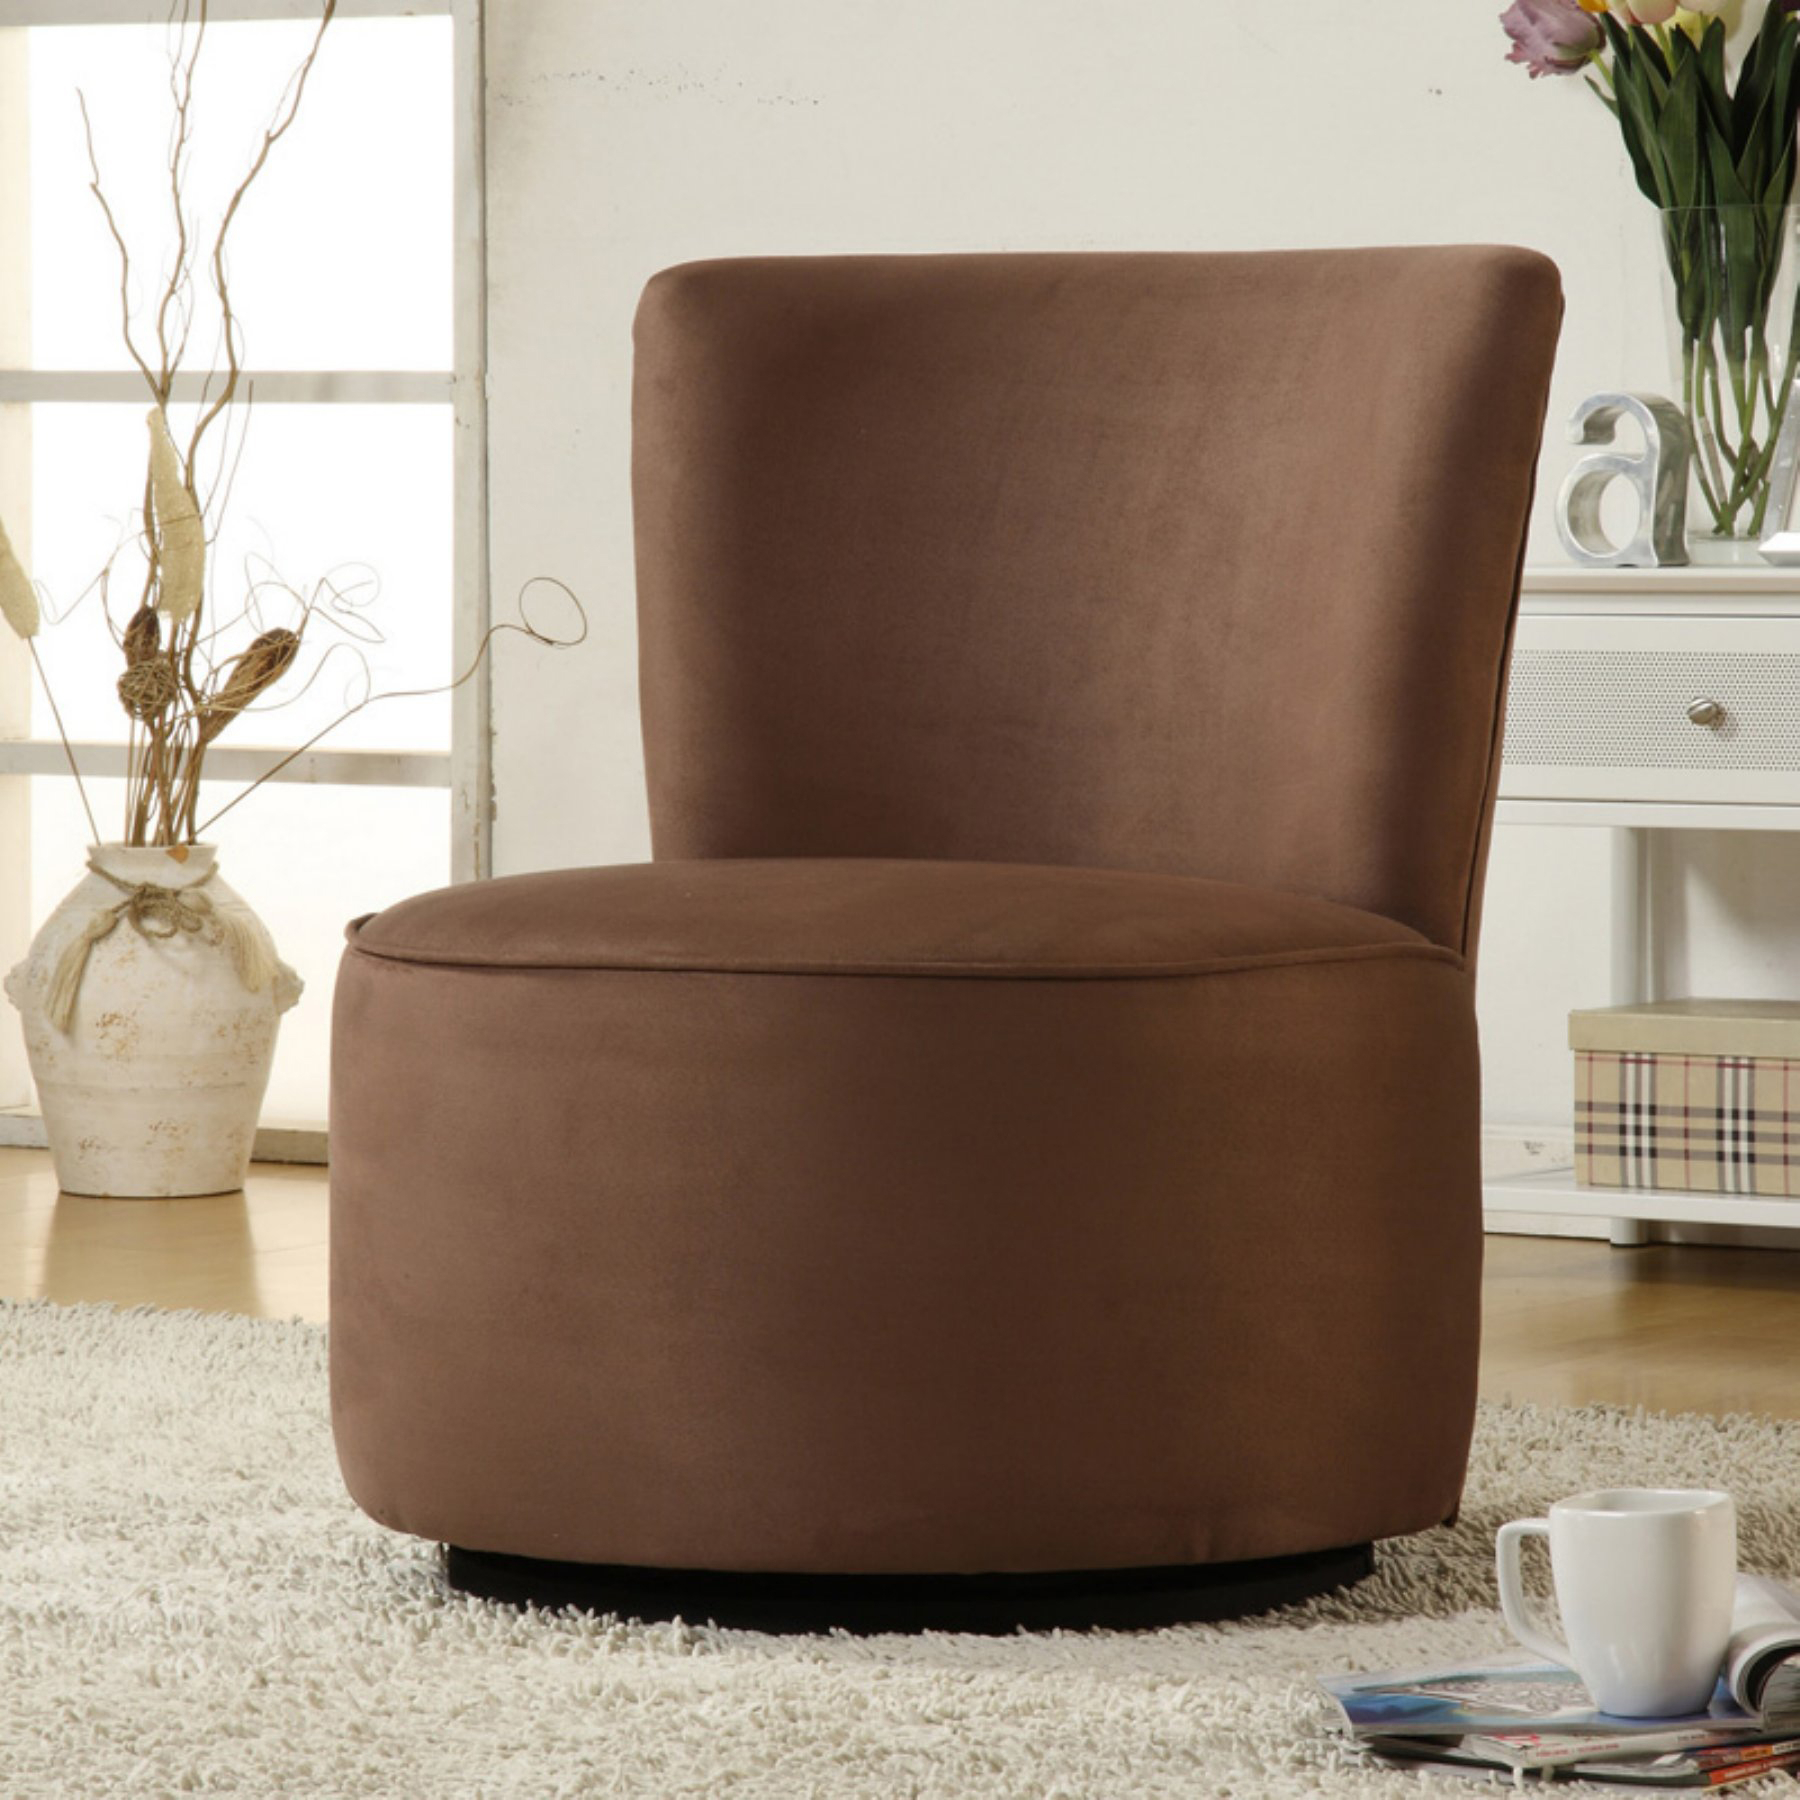 Aiden Round Fabric Swivel Chair  Brown – Walmart Intended For Aidan Ii Swivel Accent Chairs (Image 9 of 20)